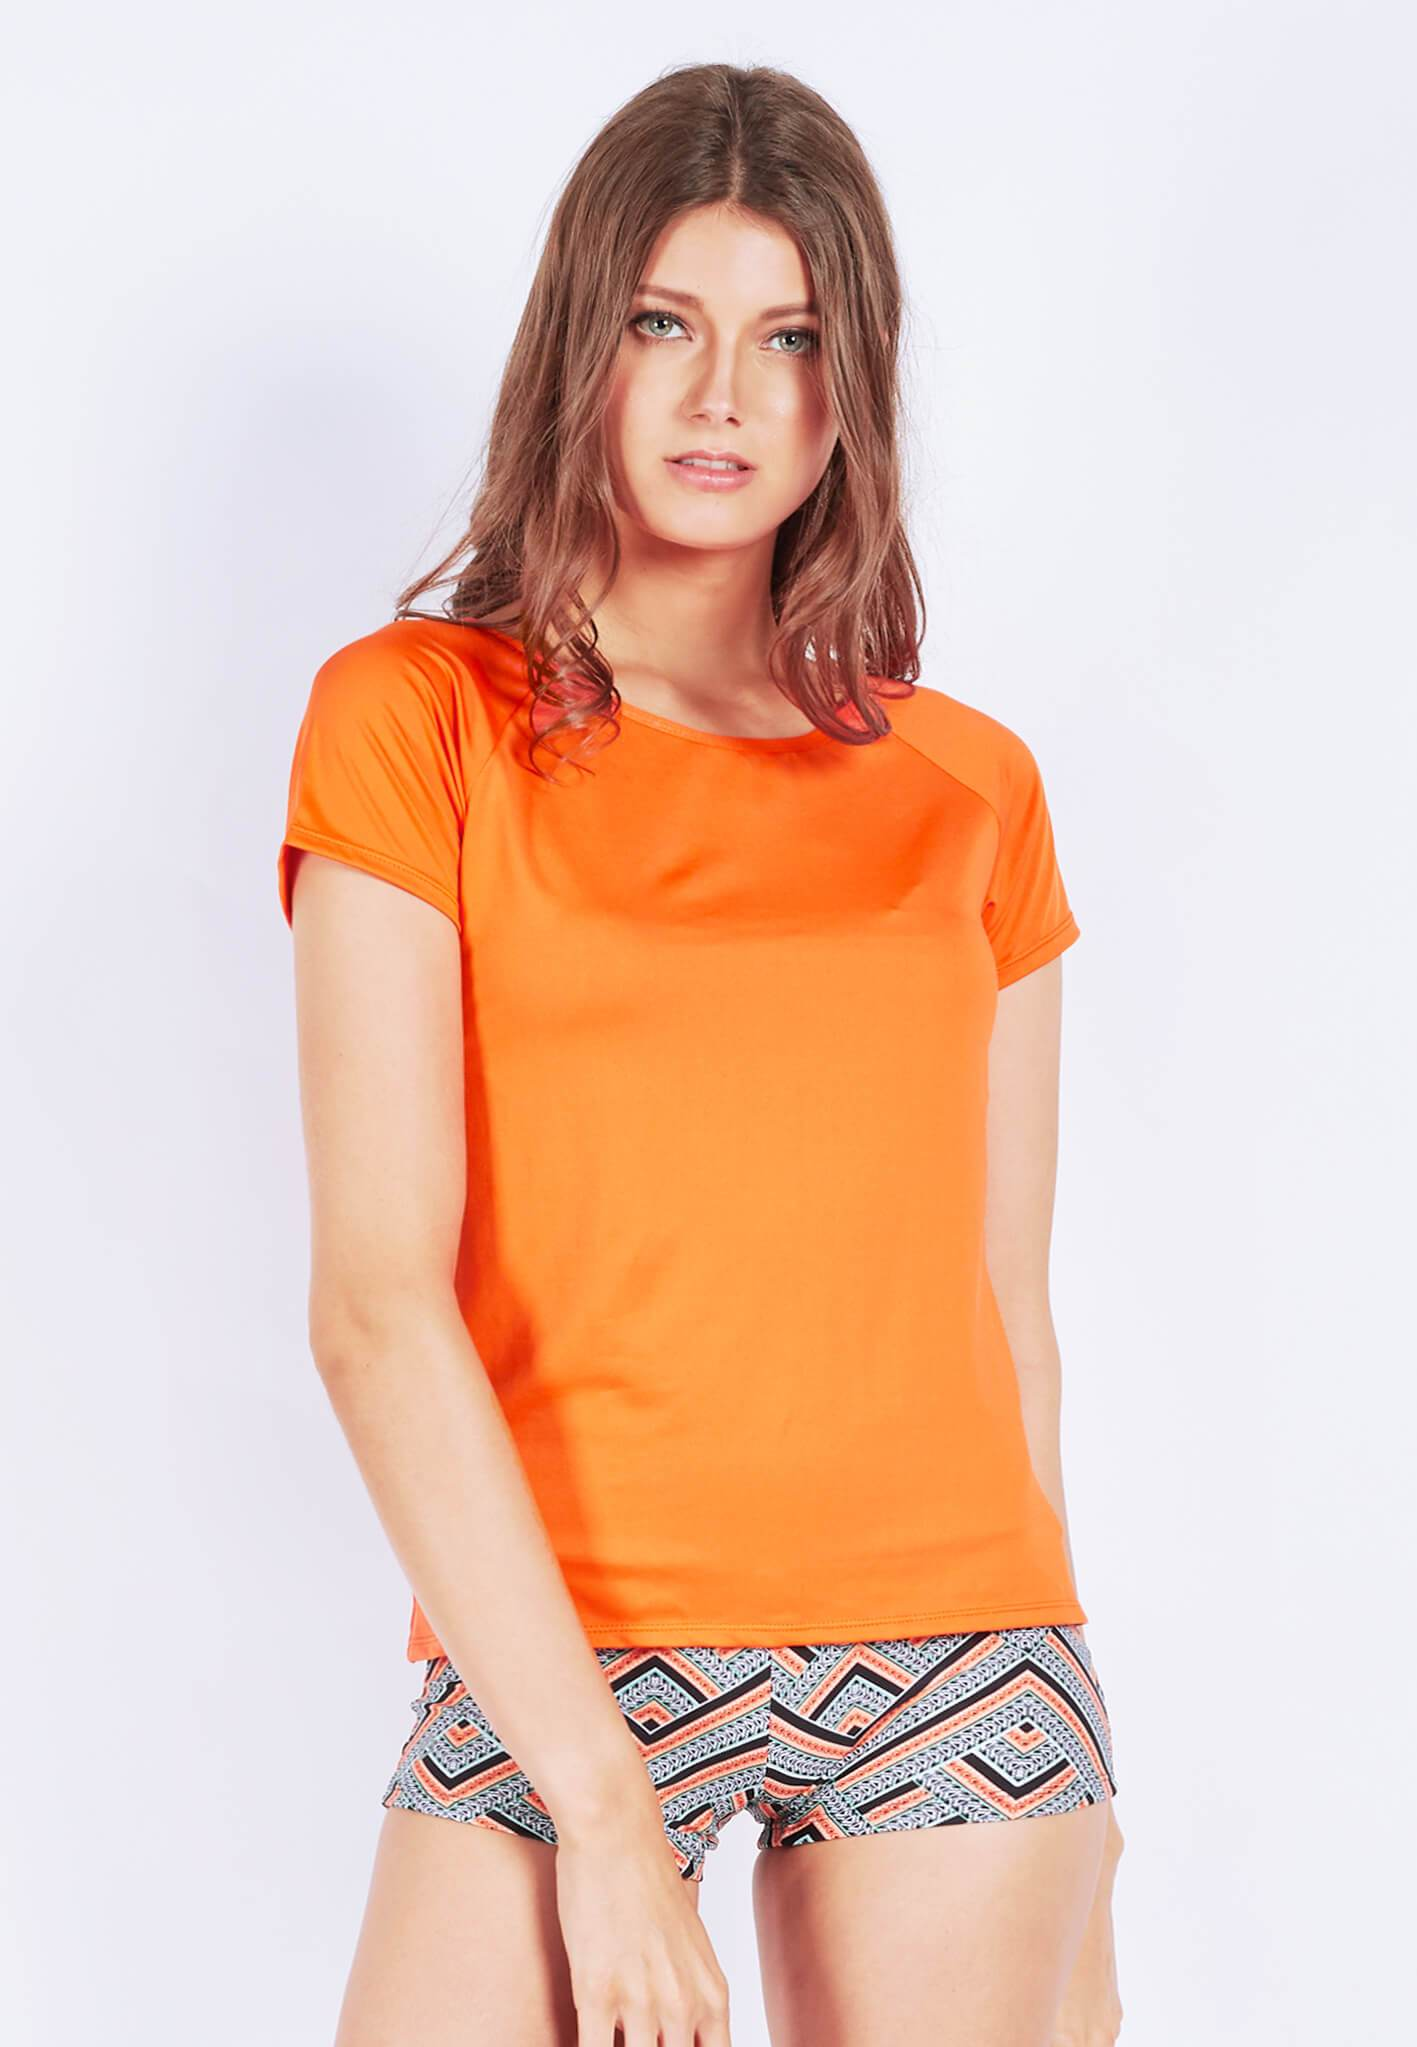 Power-Up Tee in Cider Orange (S - XL) - FUNFIT